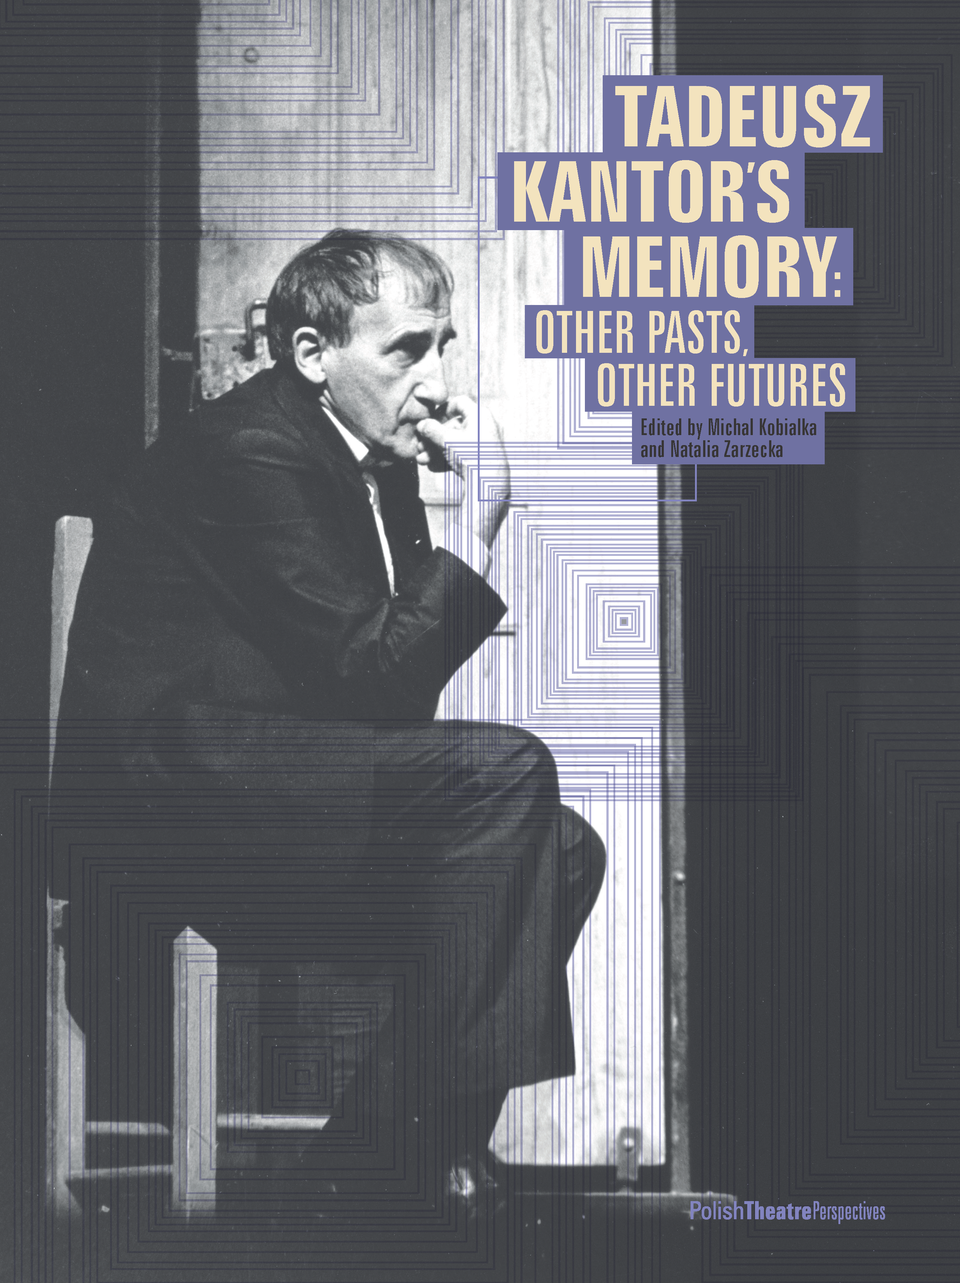 Tadeusz Kantor's Memory: Other pasts, other futures